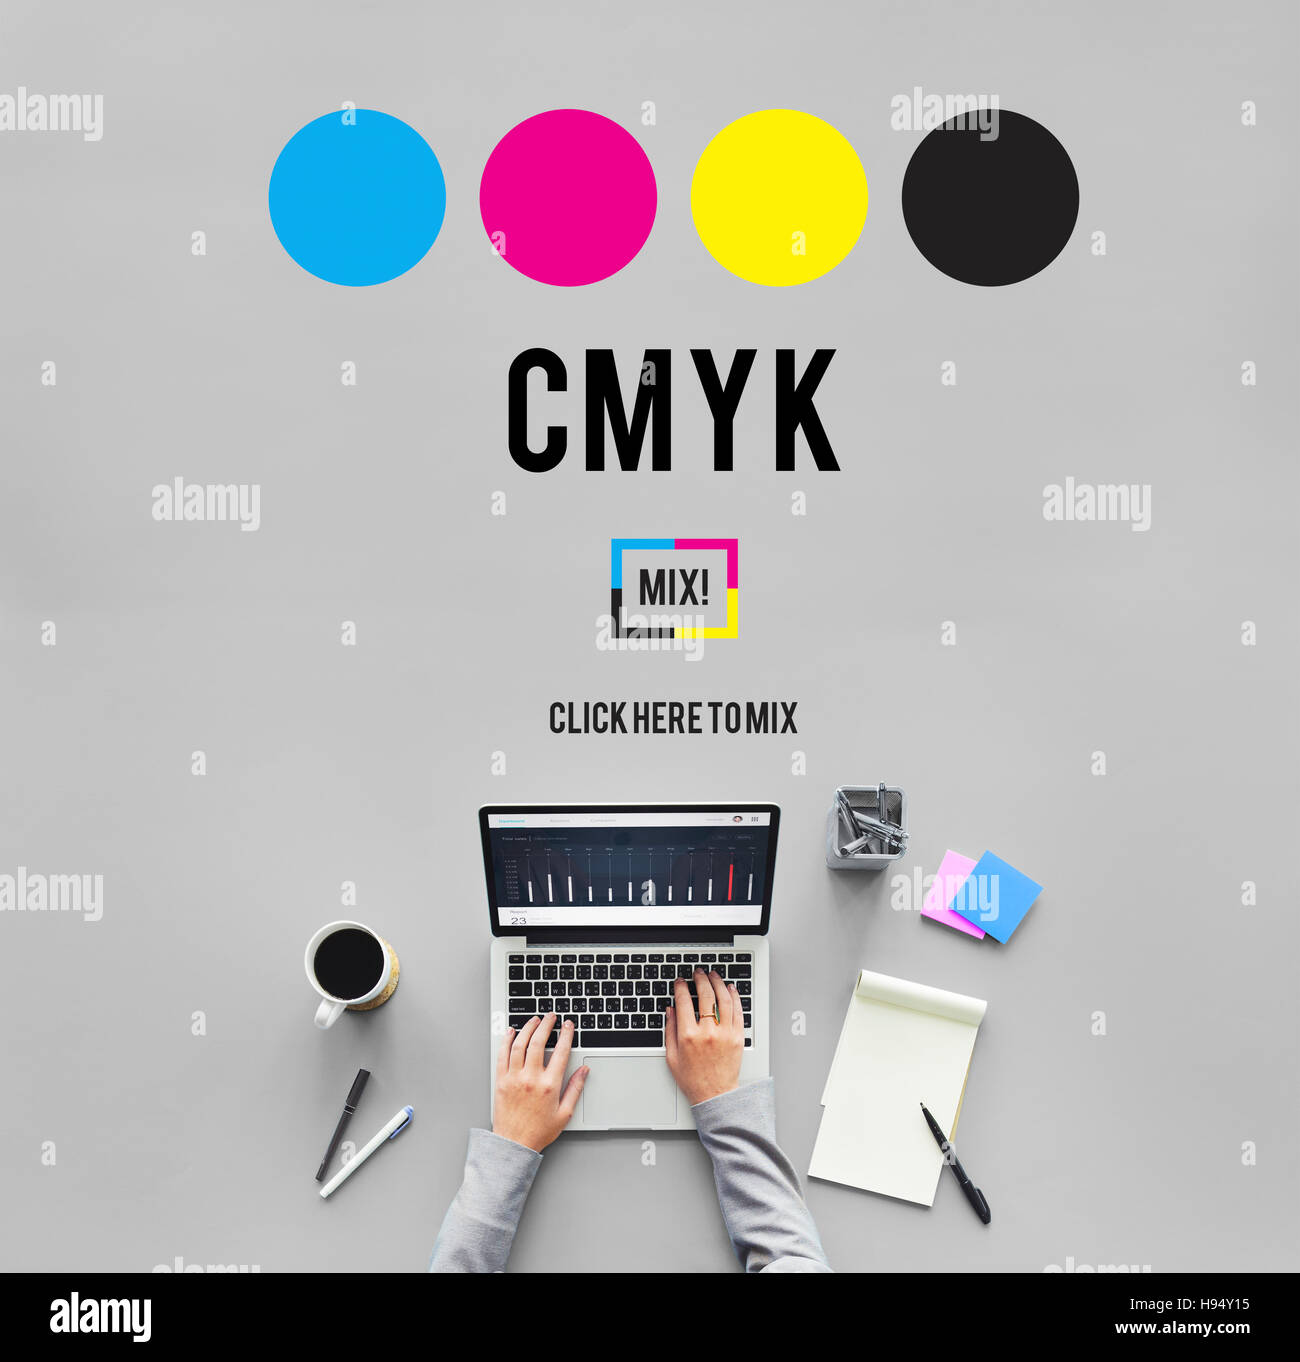 CMYK Cyan Magenta Yellow Key Color Printing Process Concept - Stock Image